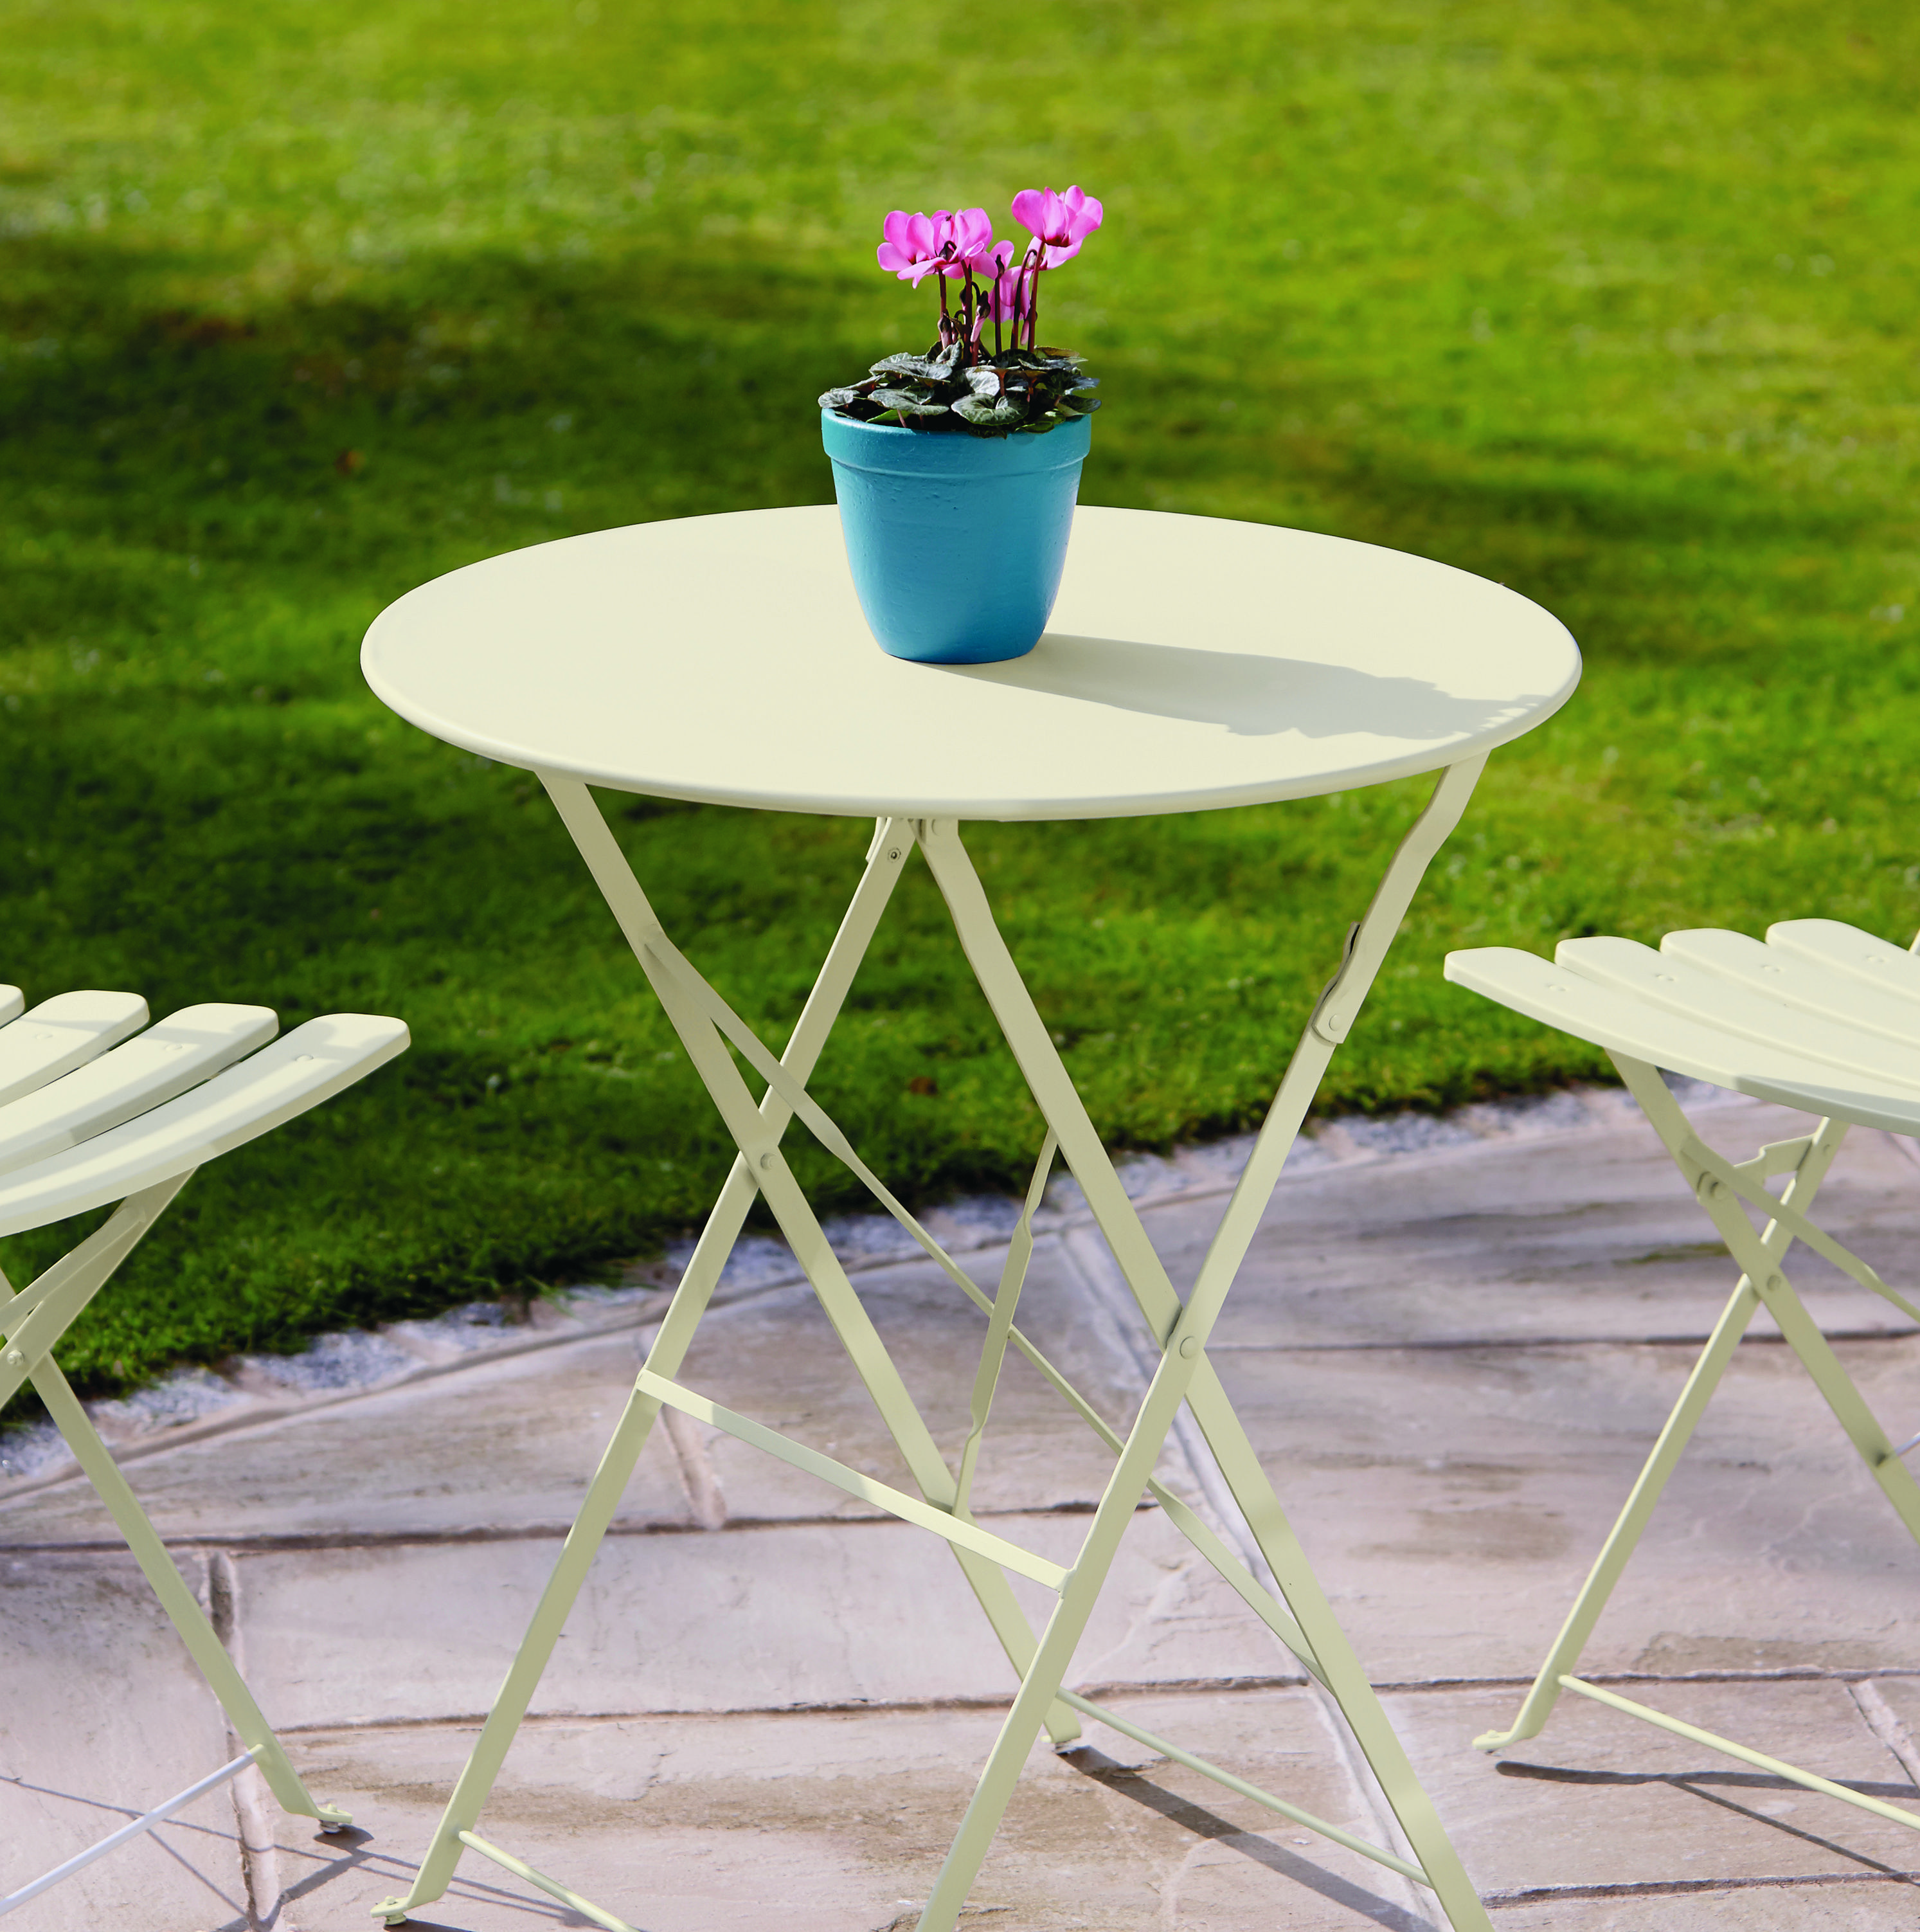 Table painted in Ronseal White Ash Garden Paint   Colour in the ...